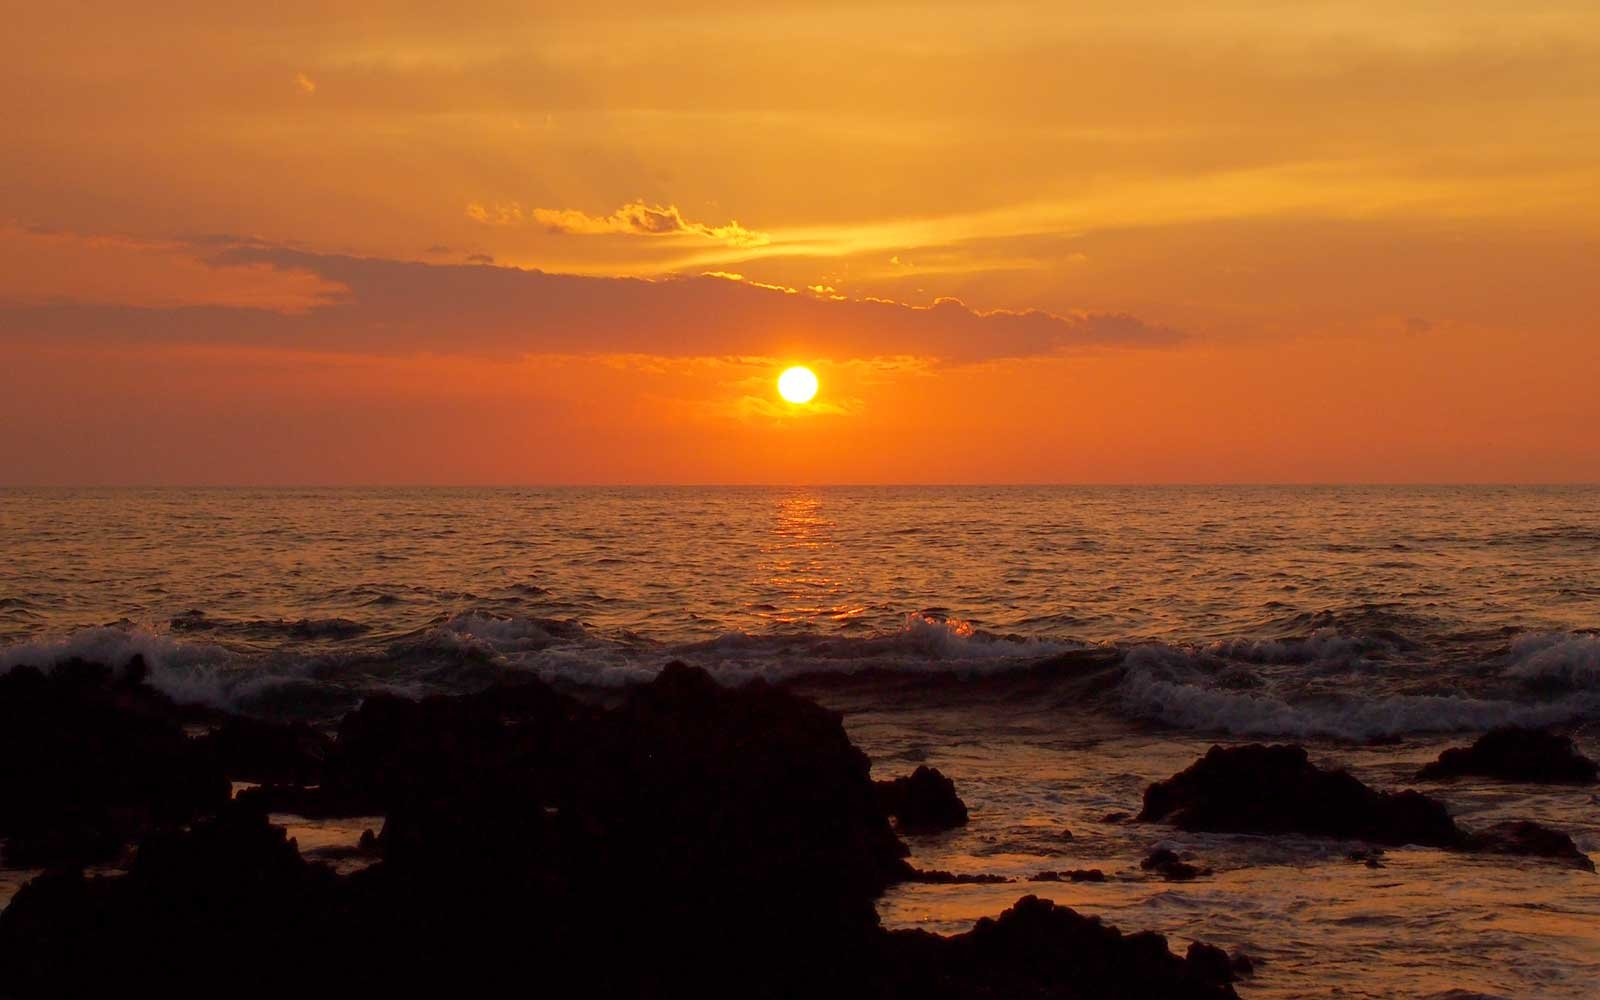 Sunset over ocean with lava rocks of Holoholokai Beach in the foreground